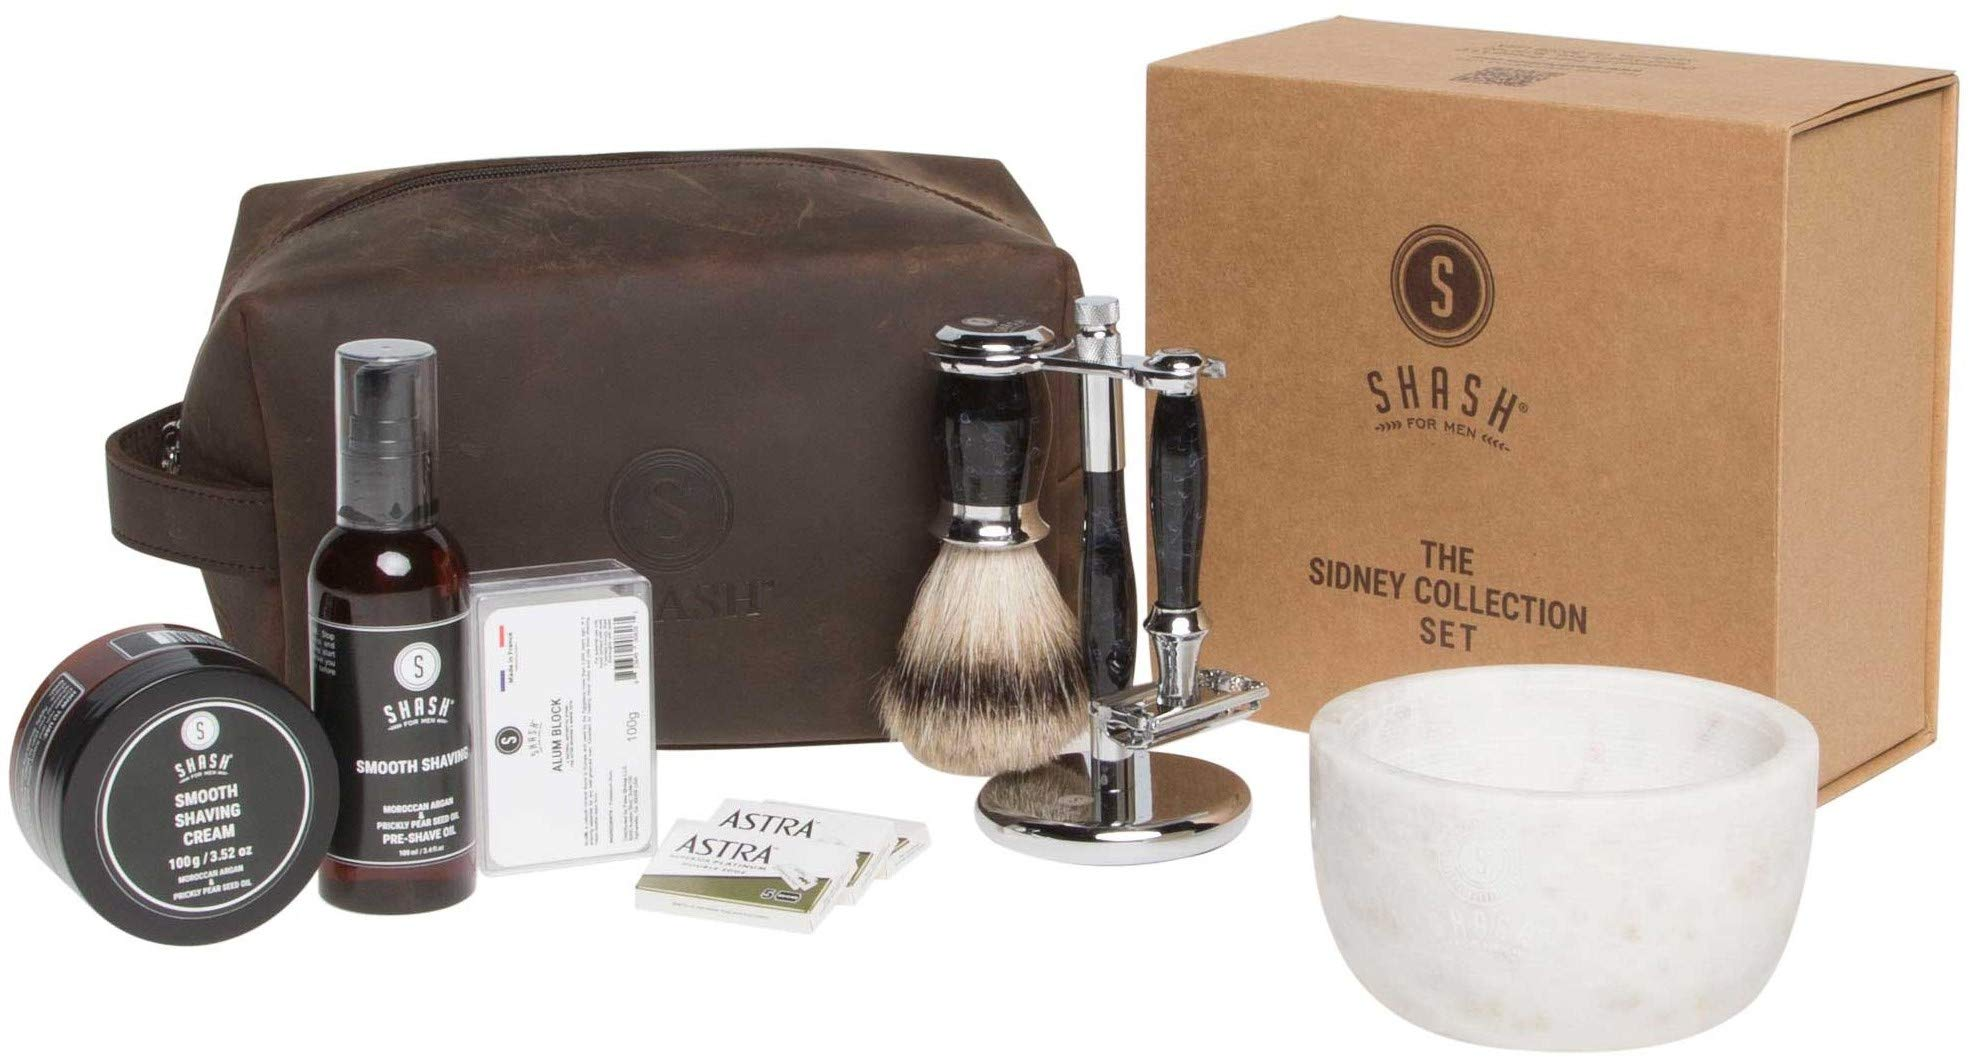 SHASH Sidney Collection Shaving Set, Black - Includes Butterfly Razor, Best Badger Brush, Stand, Pre-Shave Oil, Shaving Cream, Alum Block and Double Edged Blades - Premium Quality Brass and Chrome by SHASH